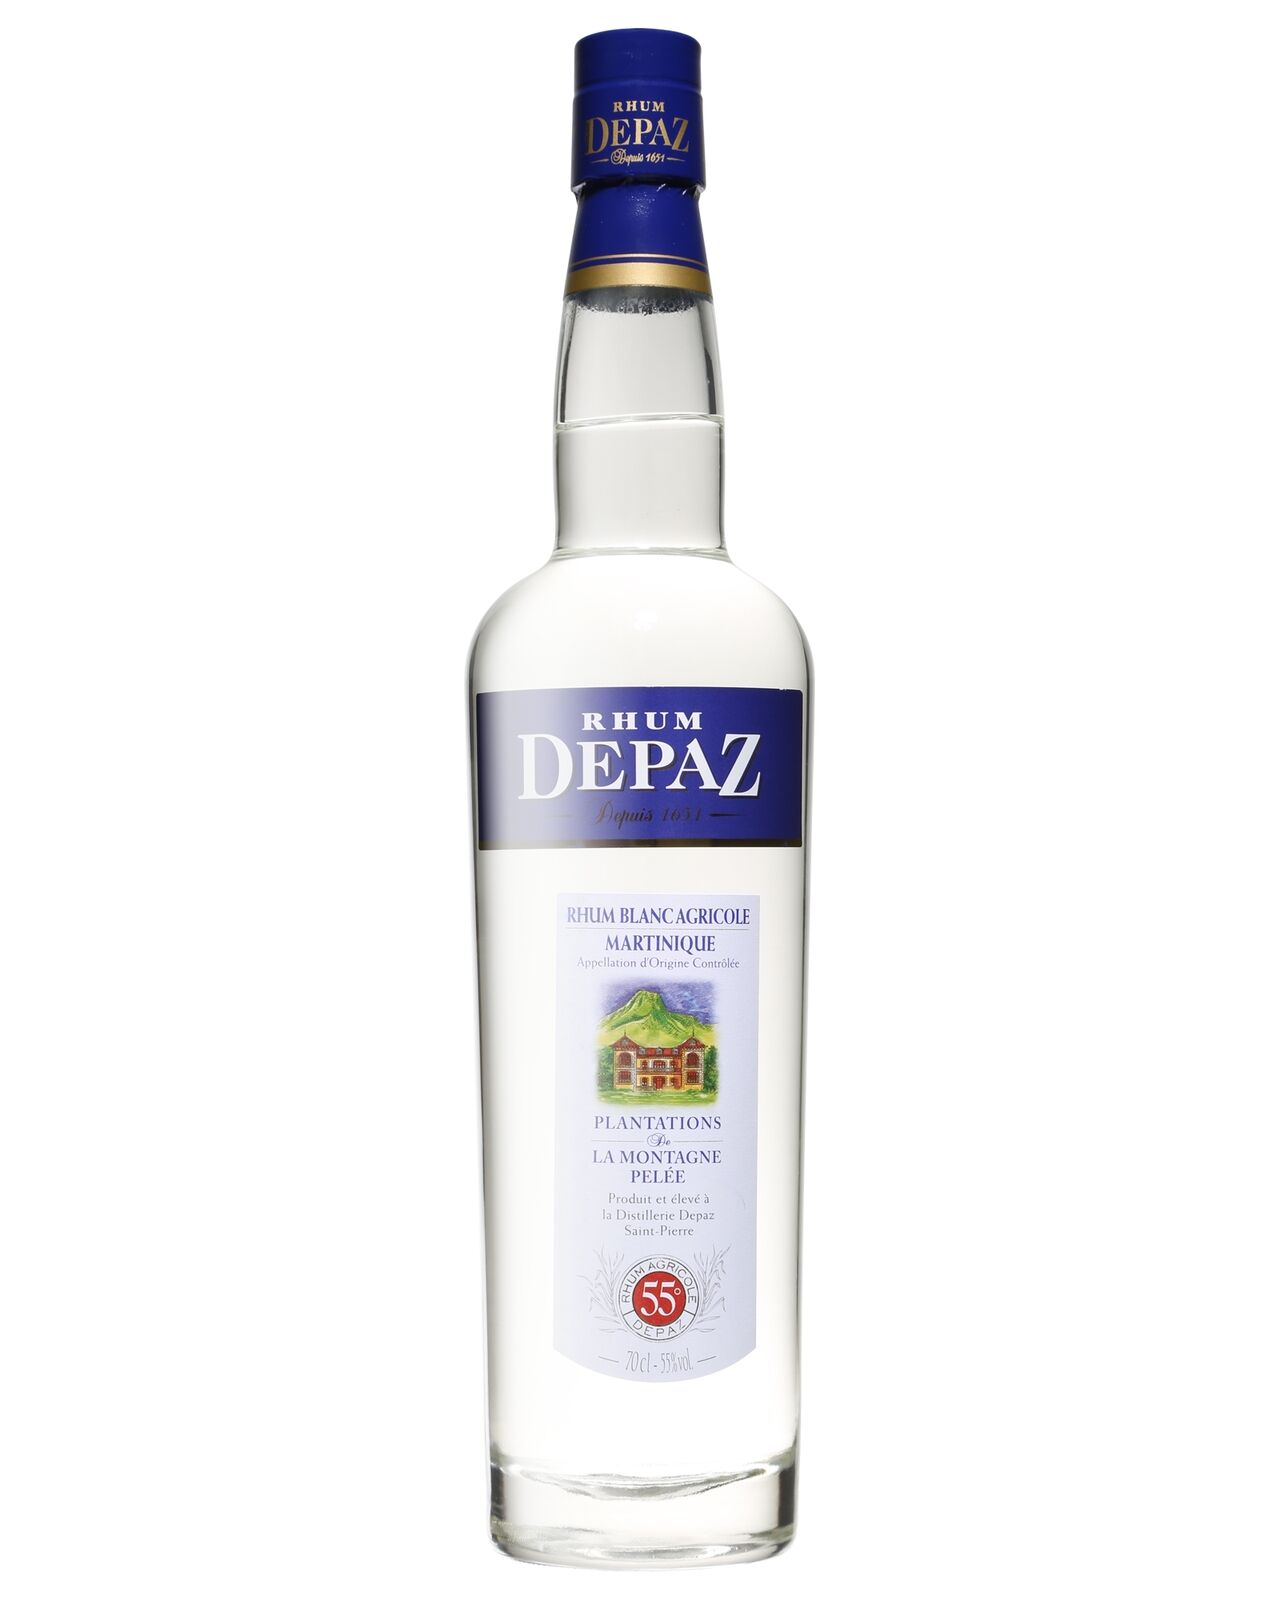 Depaz Rhum Agricole Blanc 700mL bottle White Rum